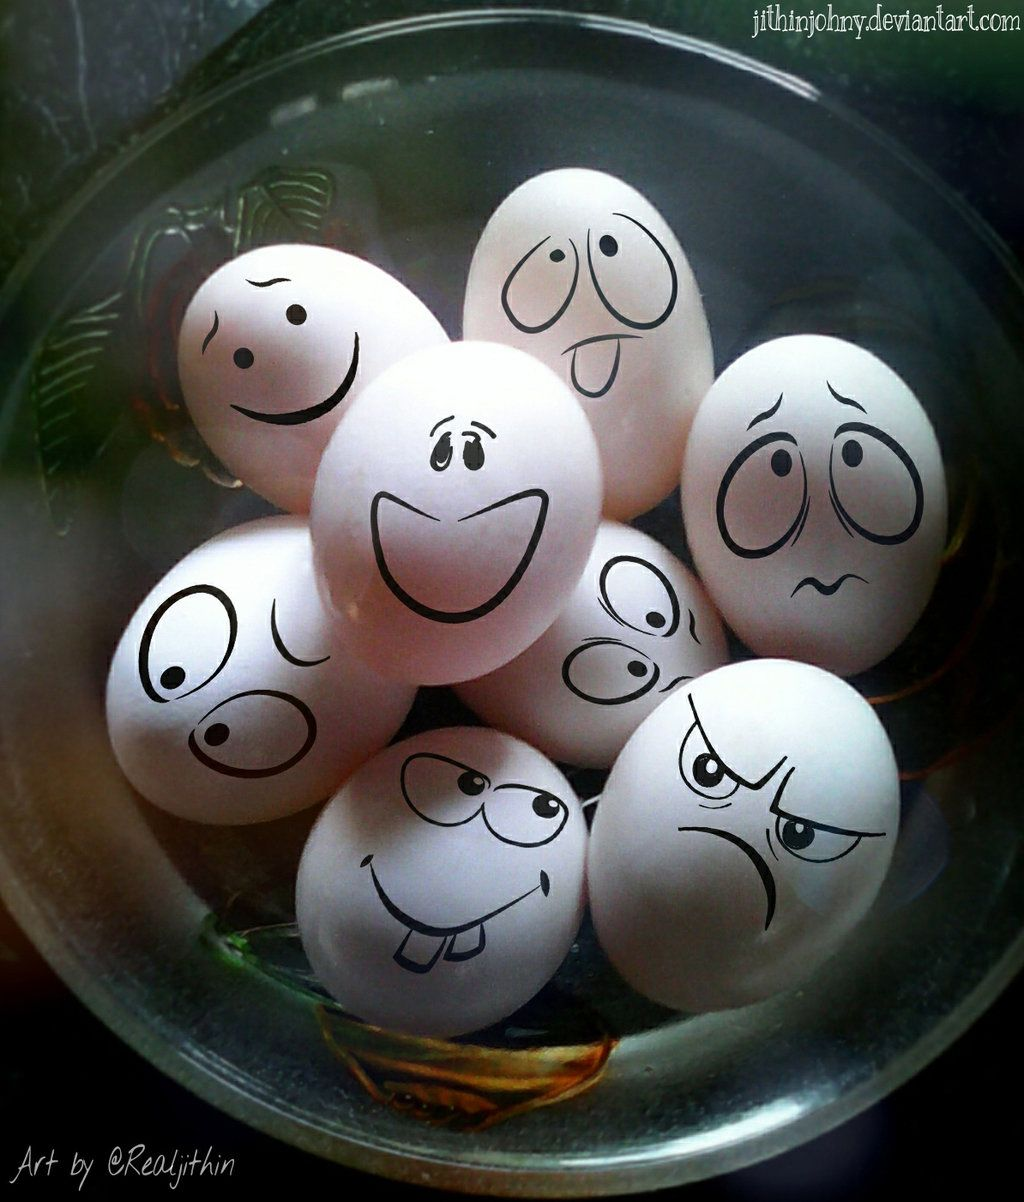 Crazy Eggs by jithinjohny on DeviantArt